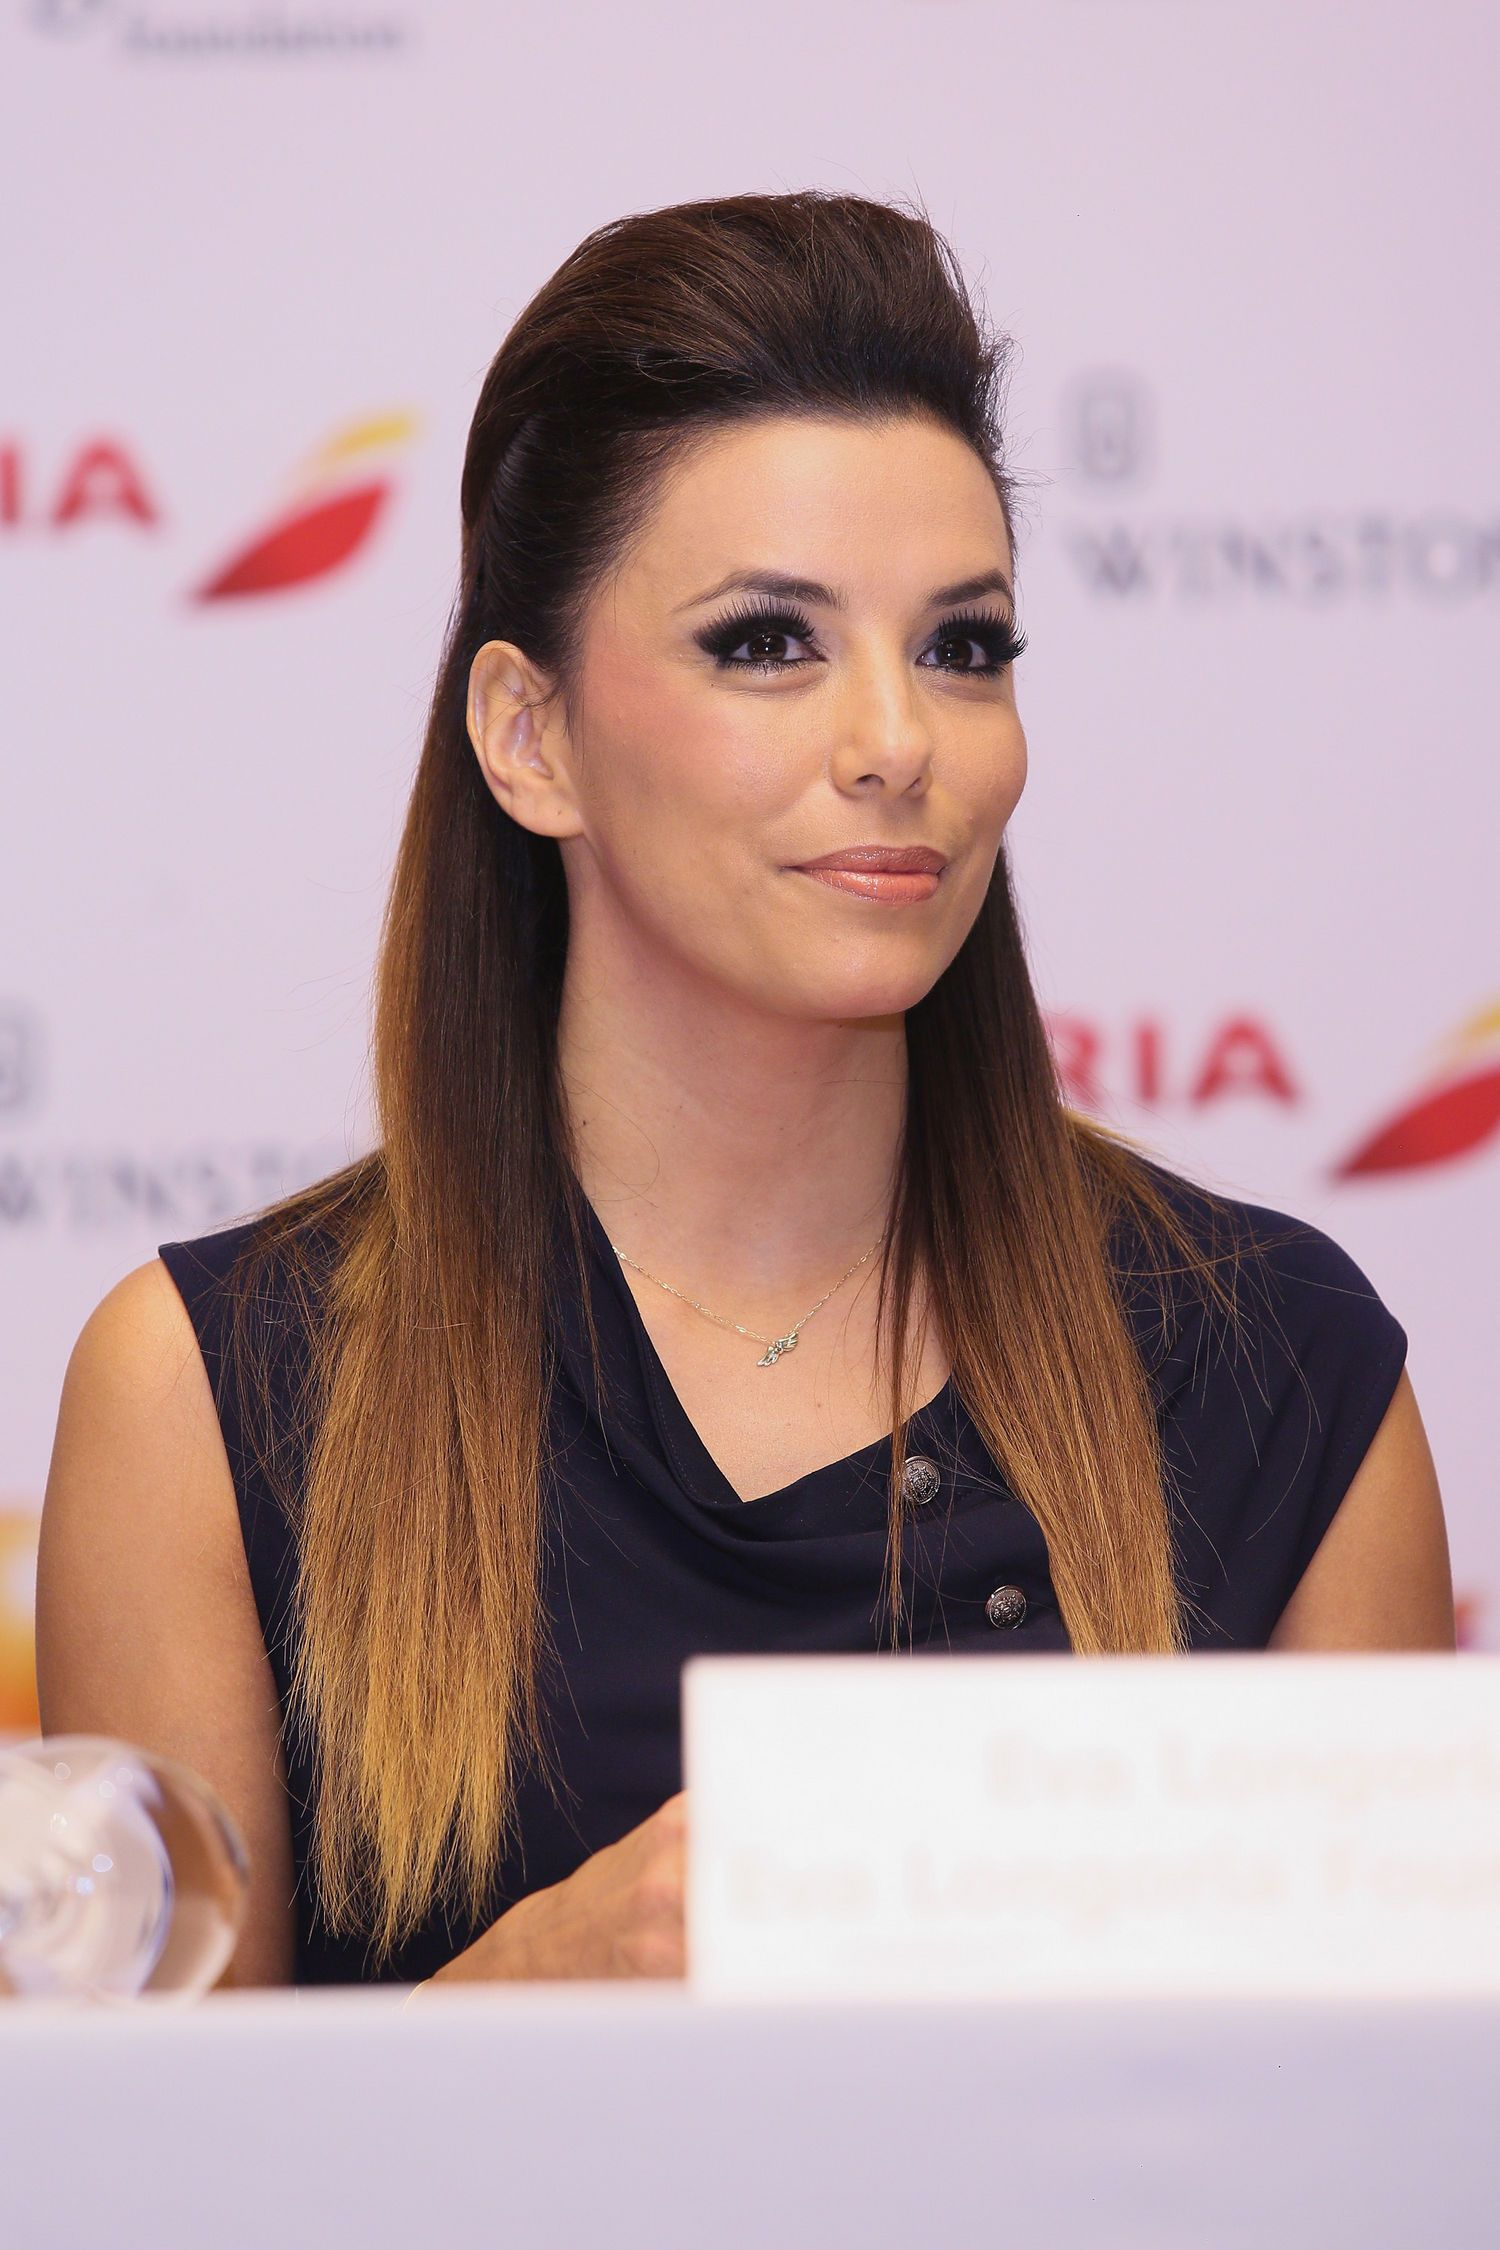 No barrette steal this hairstyle idea from eva longoria that keeps